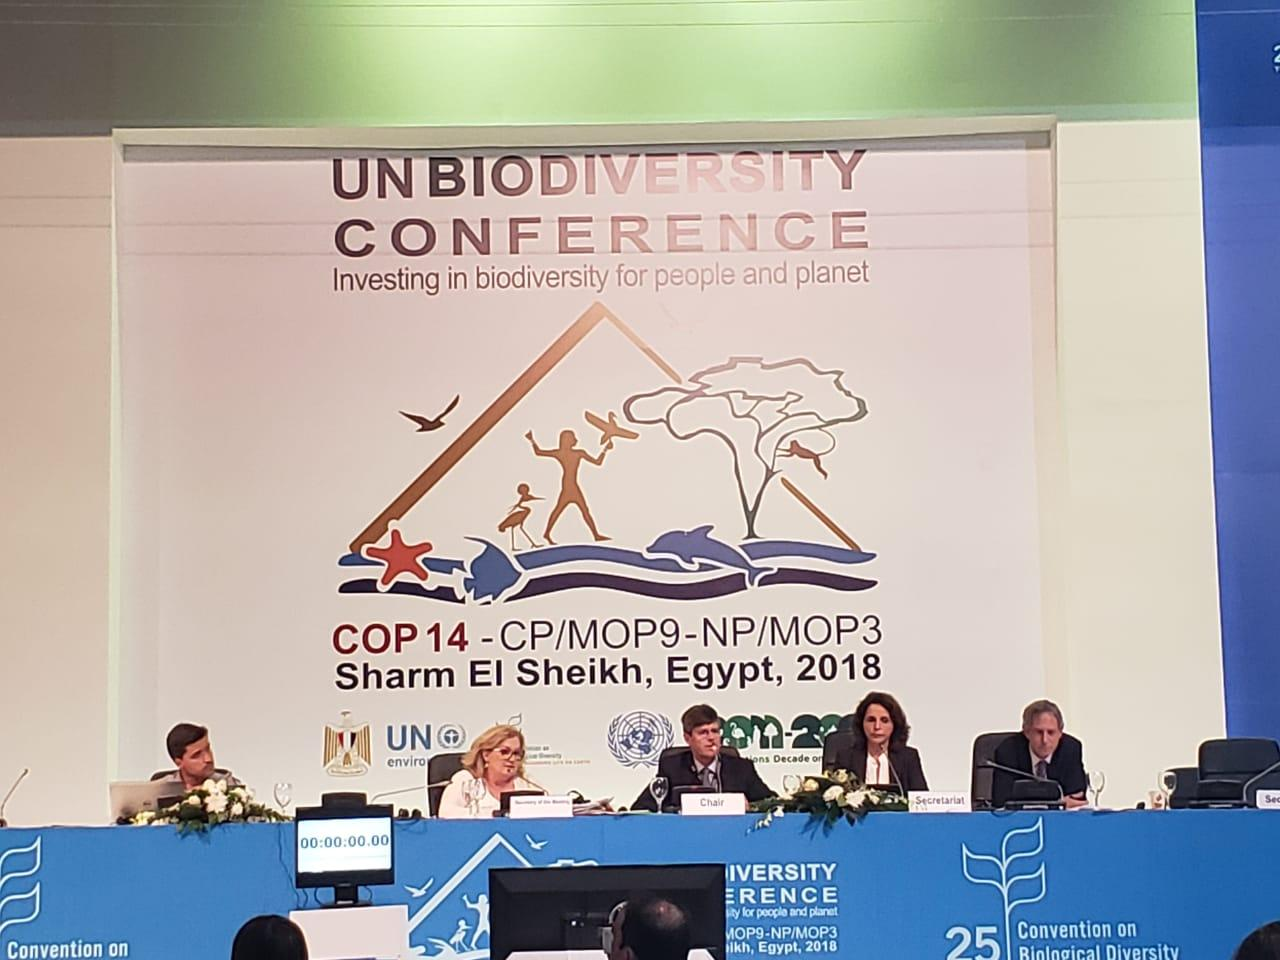 LIFE Institute promotes side event during UN Biodiversity Conference COP-14 in Egypt